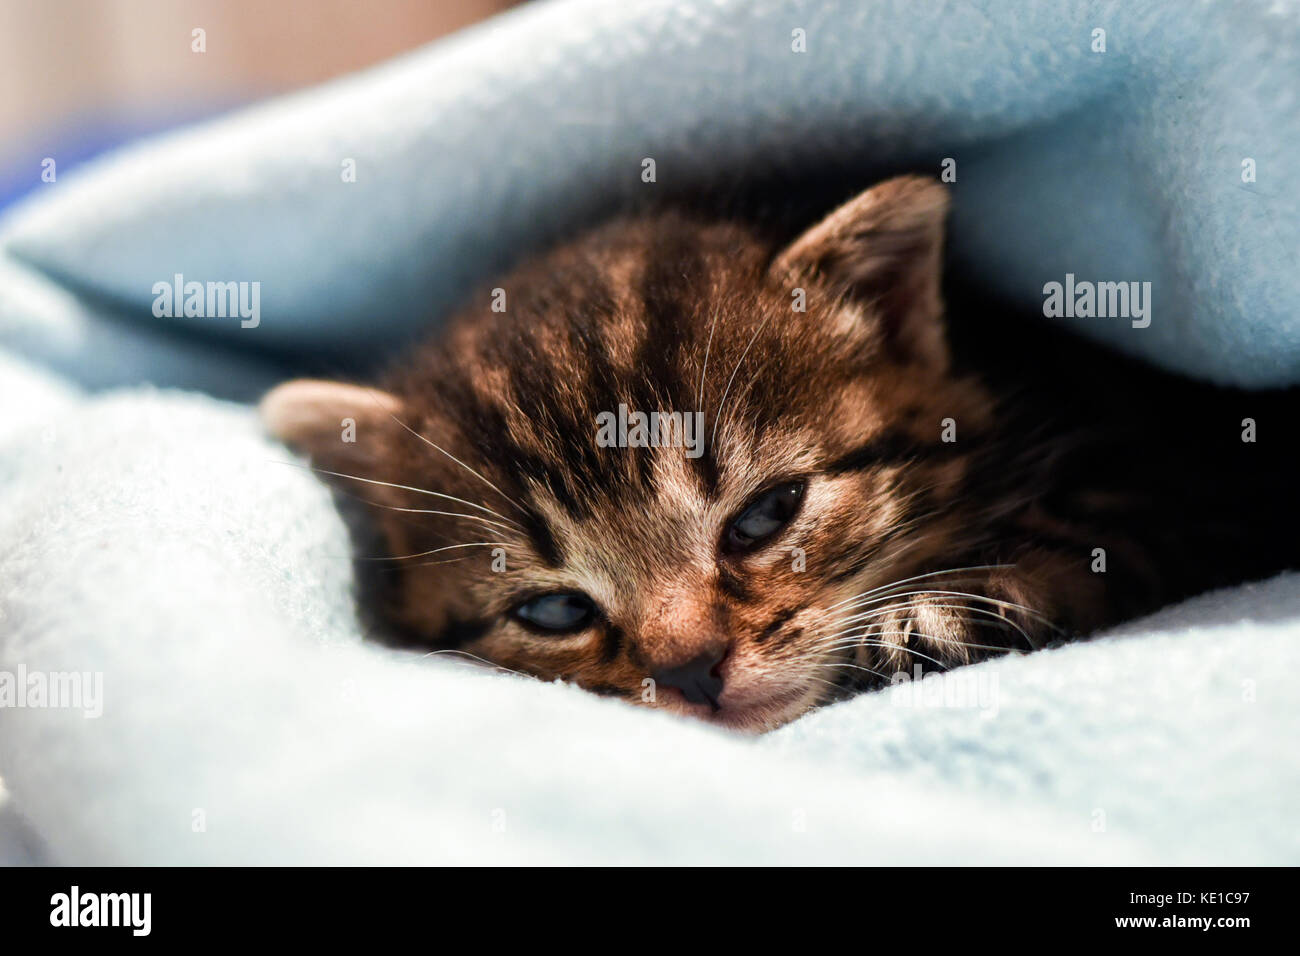 A cute little kitten lying in a blanket at home. - Stock Image